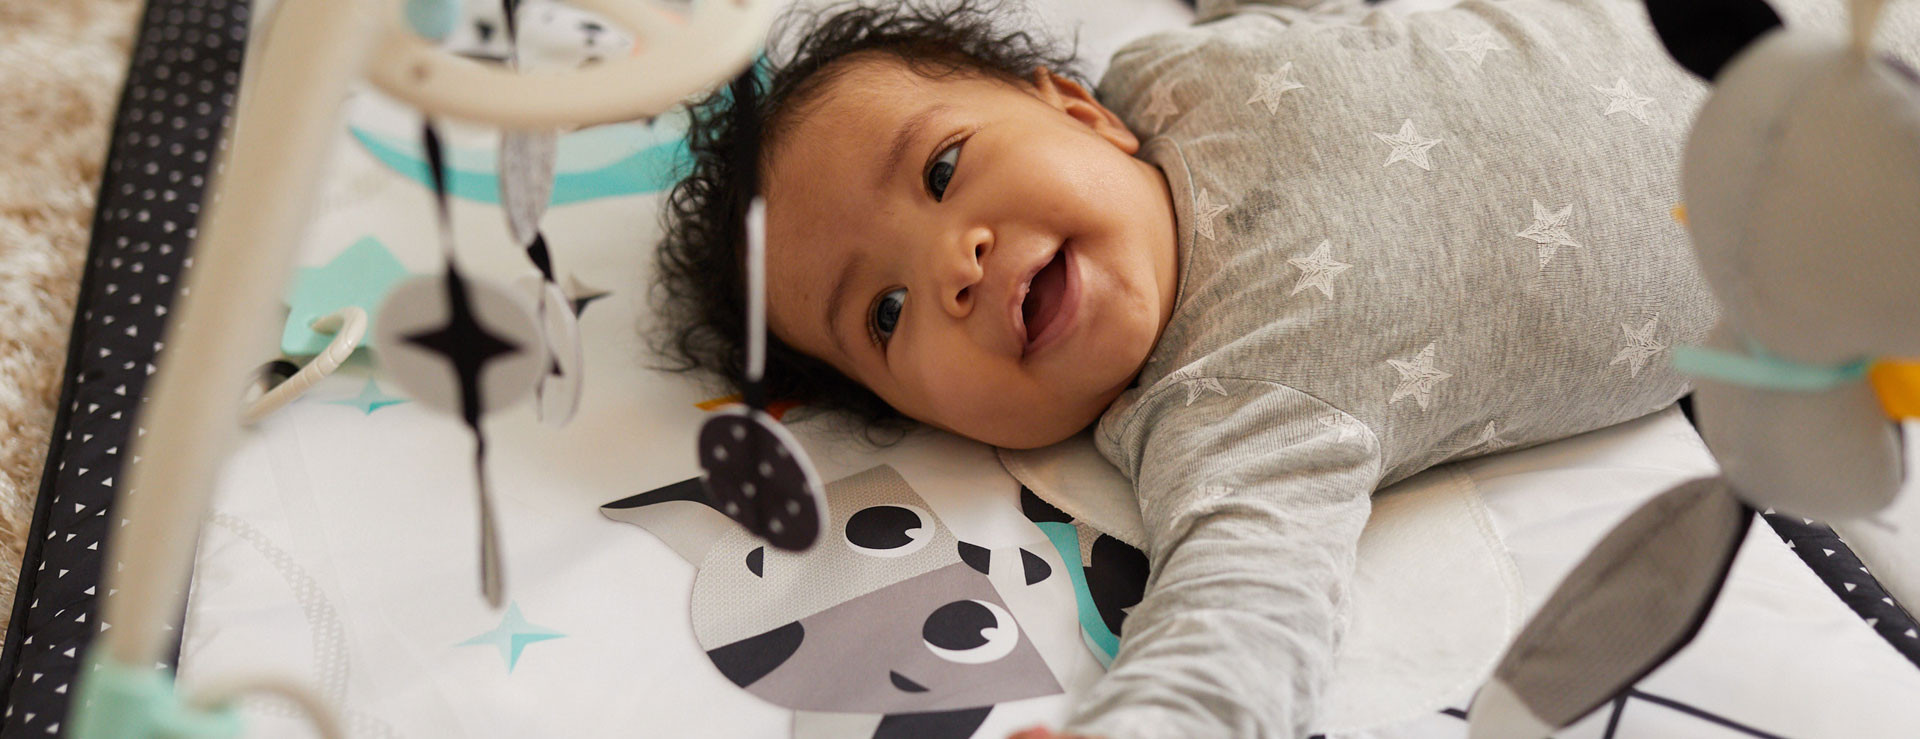 Geometric black & white shapes stimulate baby's vision